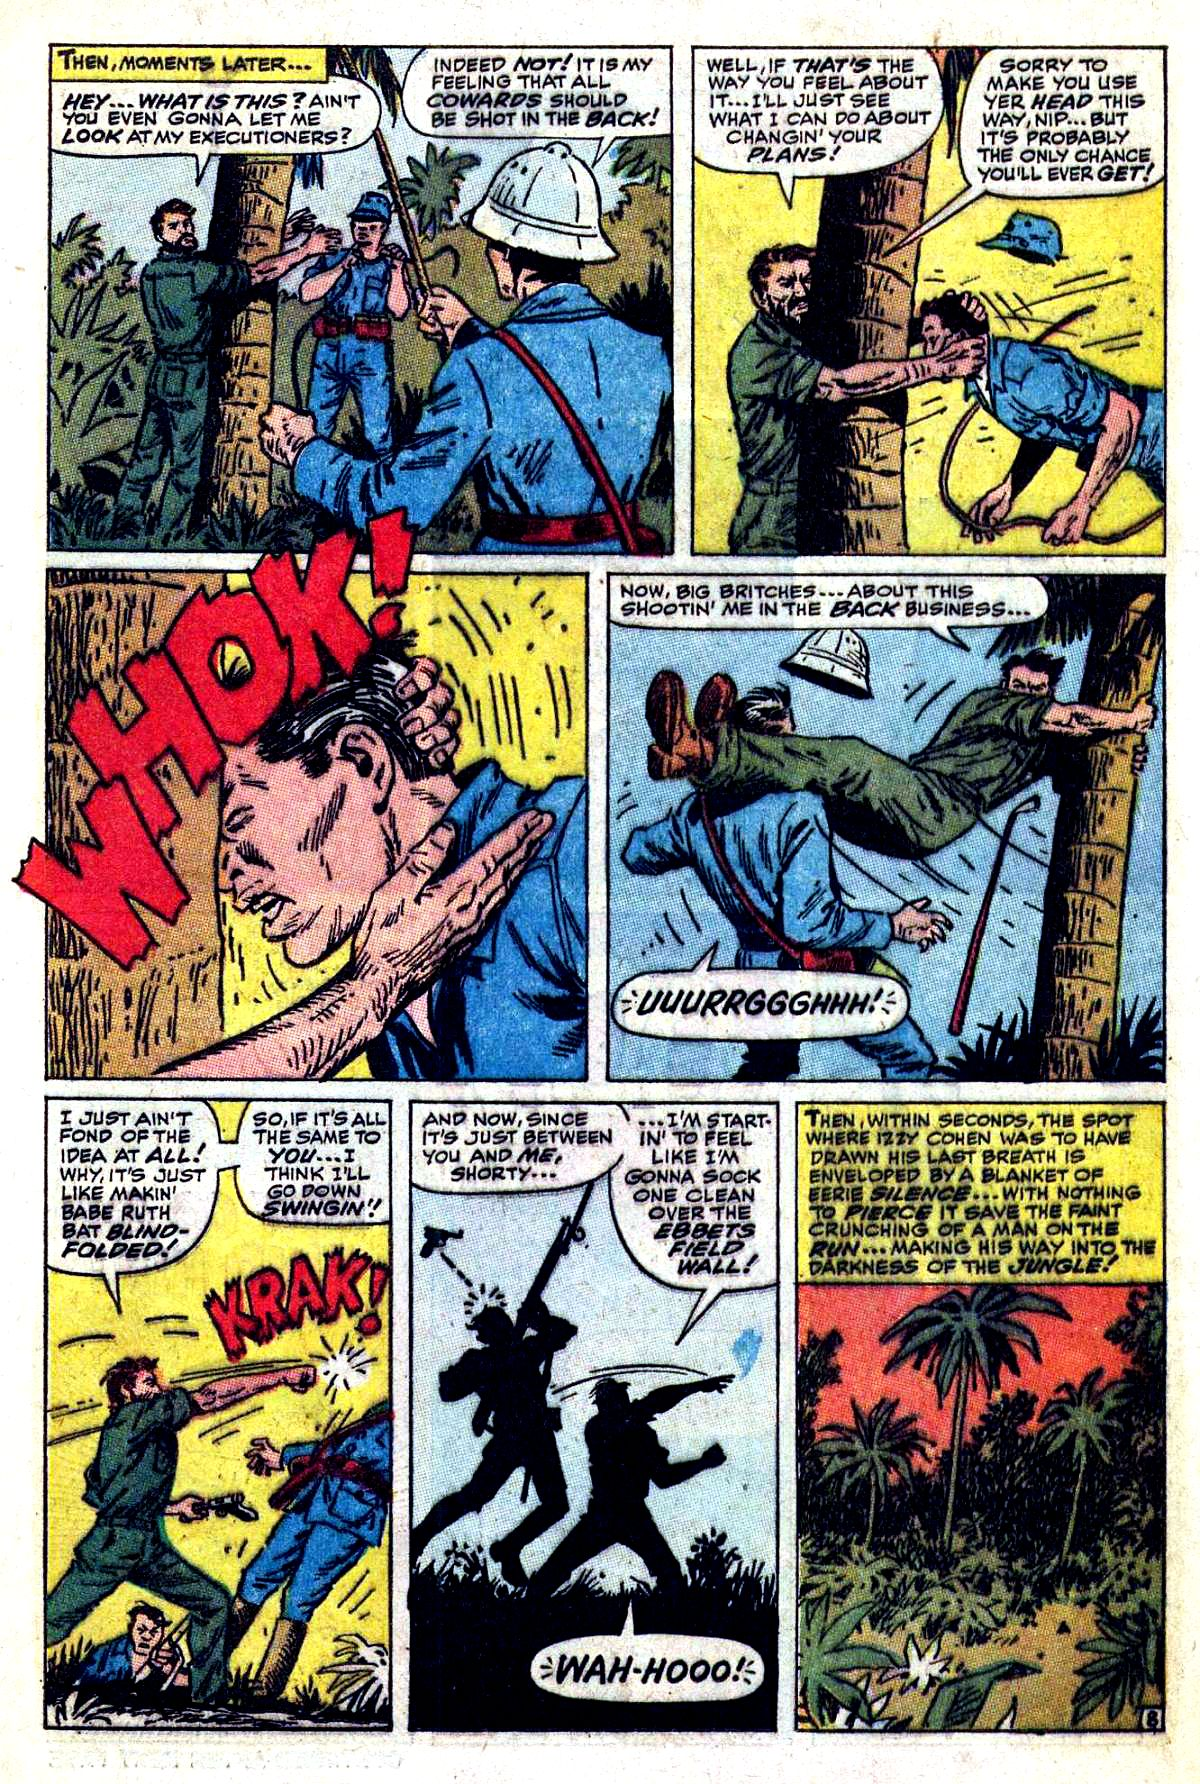 Read online Sgt. Fury comic -  Issue #54 - 13